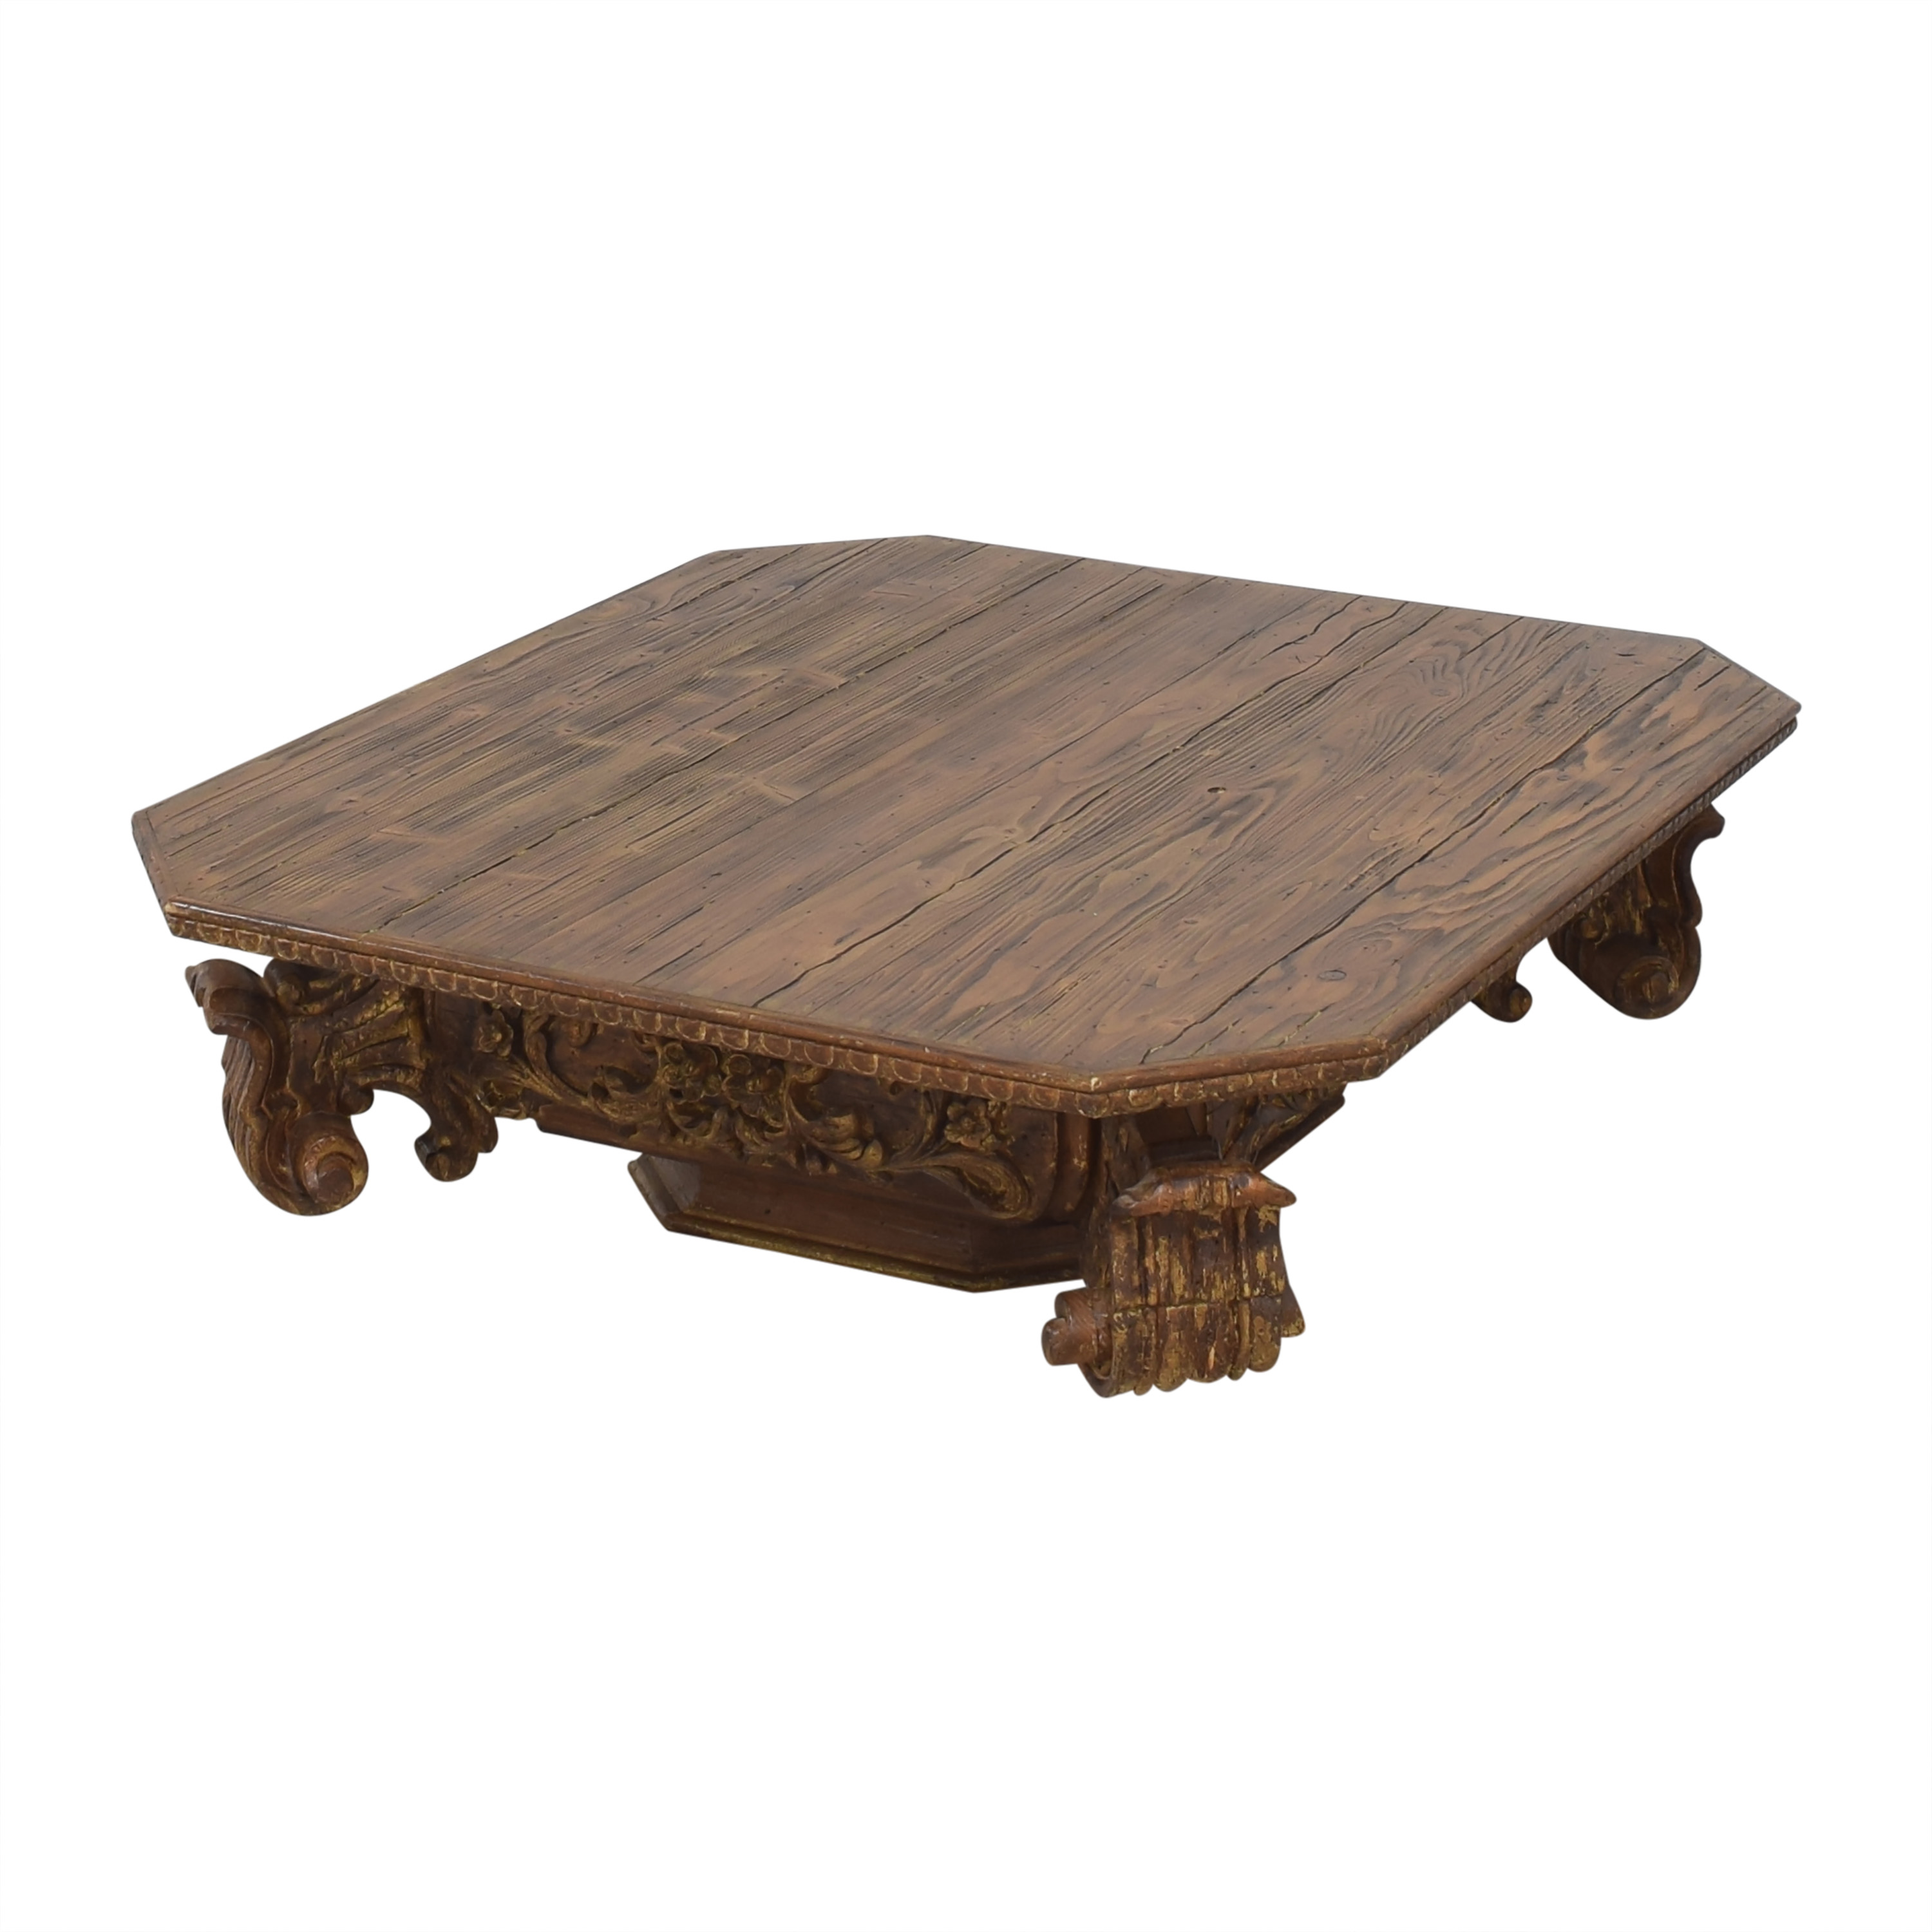 Restoration Hardware Baroque Capital Coffee Table / Tables